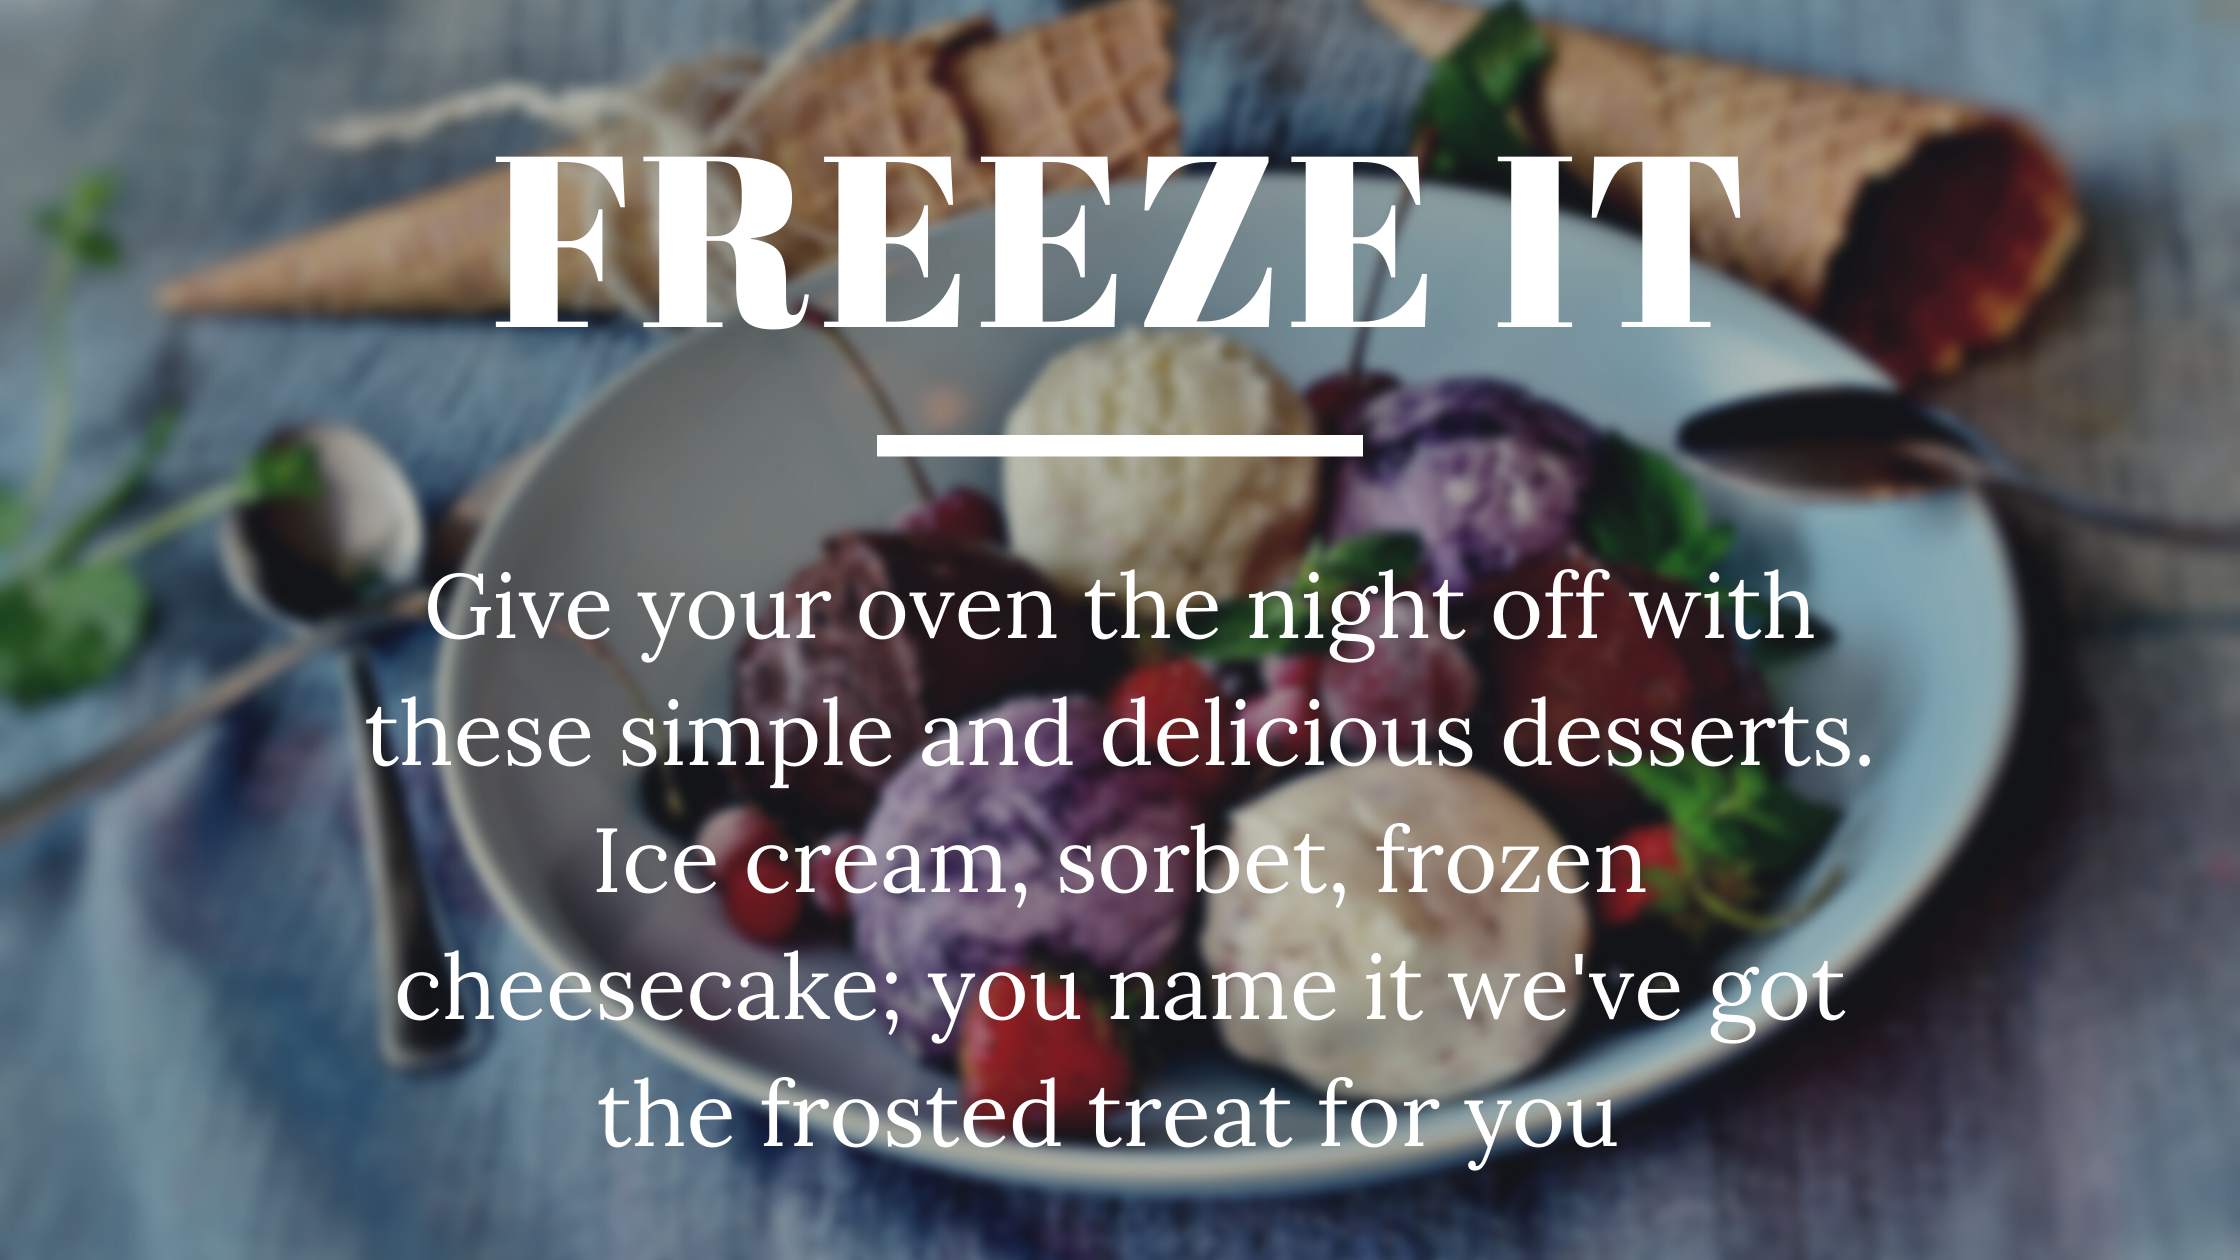 Freeze it - give your oven the night off with these simple and delicious desserts. Ice cream, sorbet, frozen cheesecake; you name it, we've got the frosted treat for you.